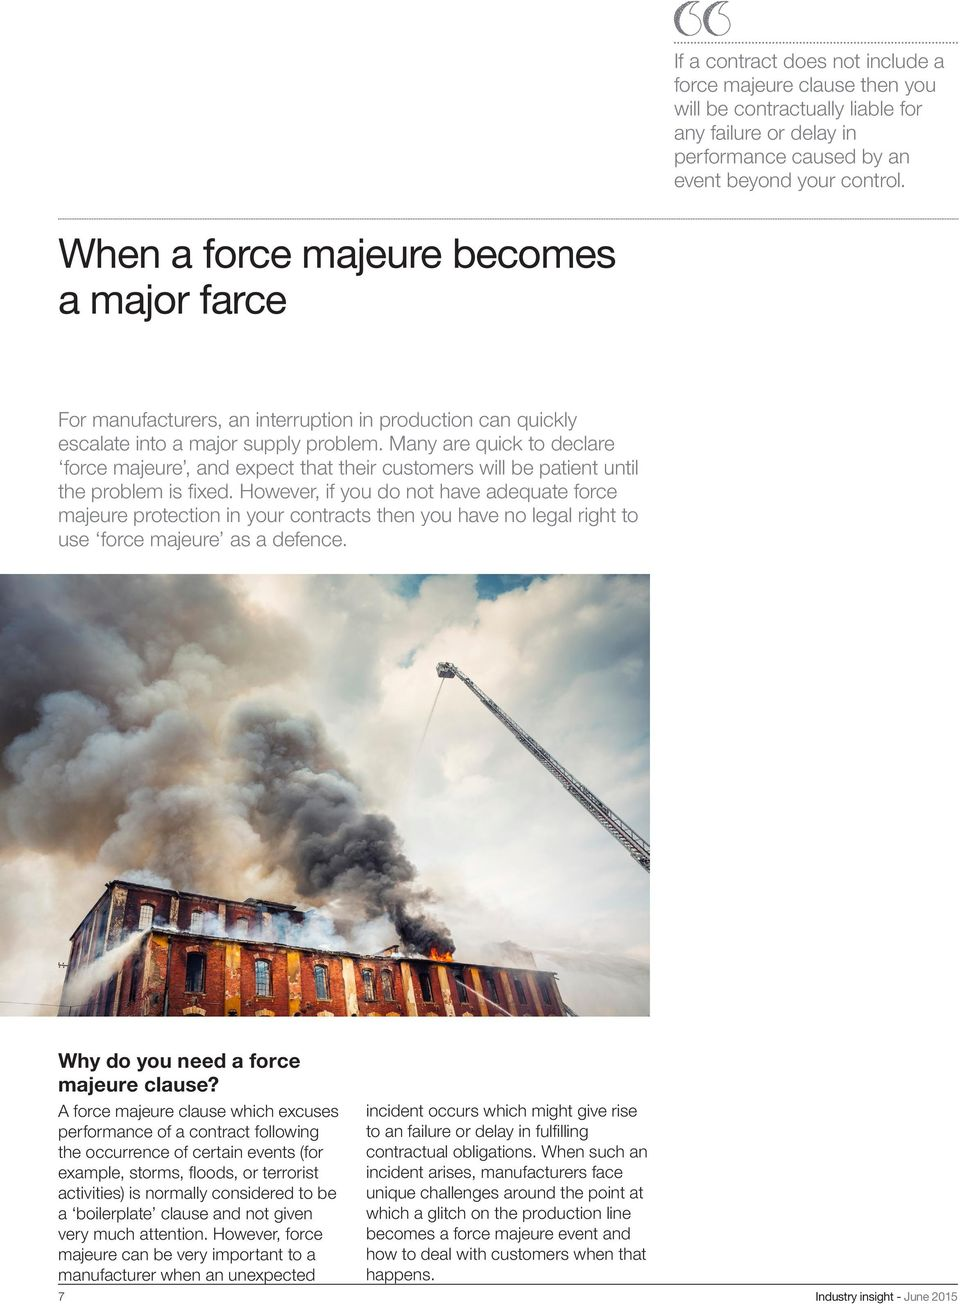 Many are quick to declare force majeure, and expect that their customers will be patient until the problem is fixed.